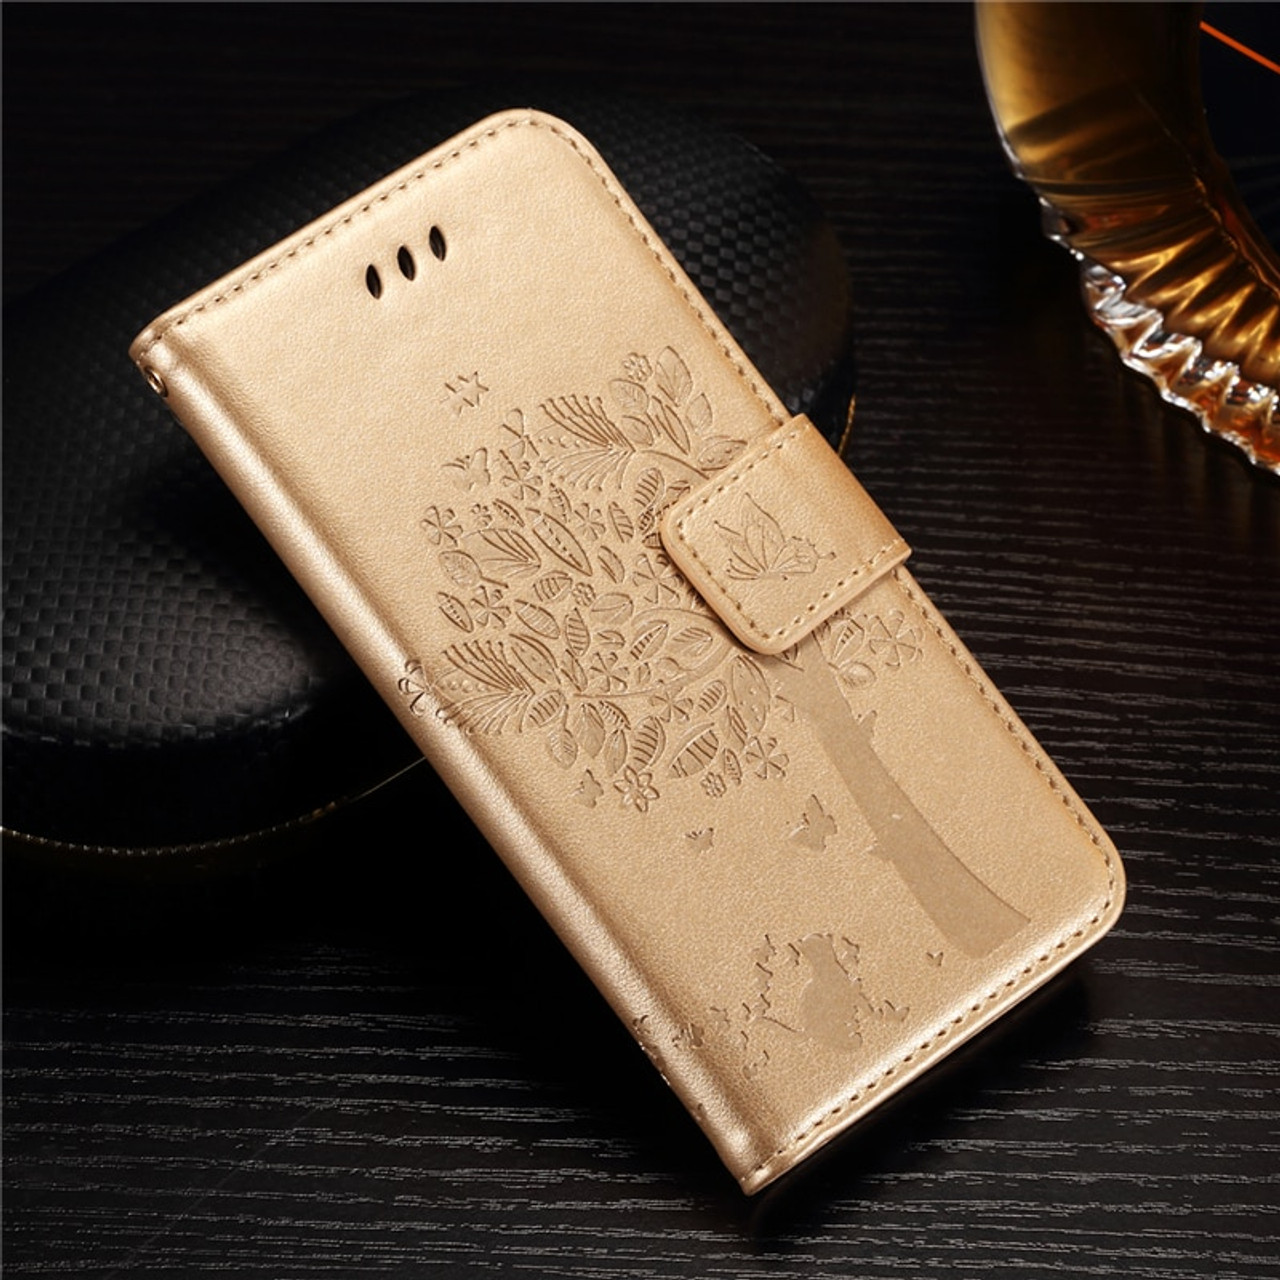 hot sales 2f140 7c263 JYERAECOM Retro Flip Case For Apple Iphone 5c 4 4s 5 5s se 6 6s 7 S X  Leather + Silicon Wallet Cover For IPhone 5c Case Coque